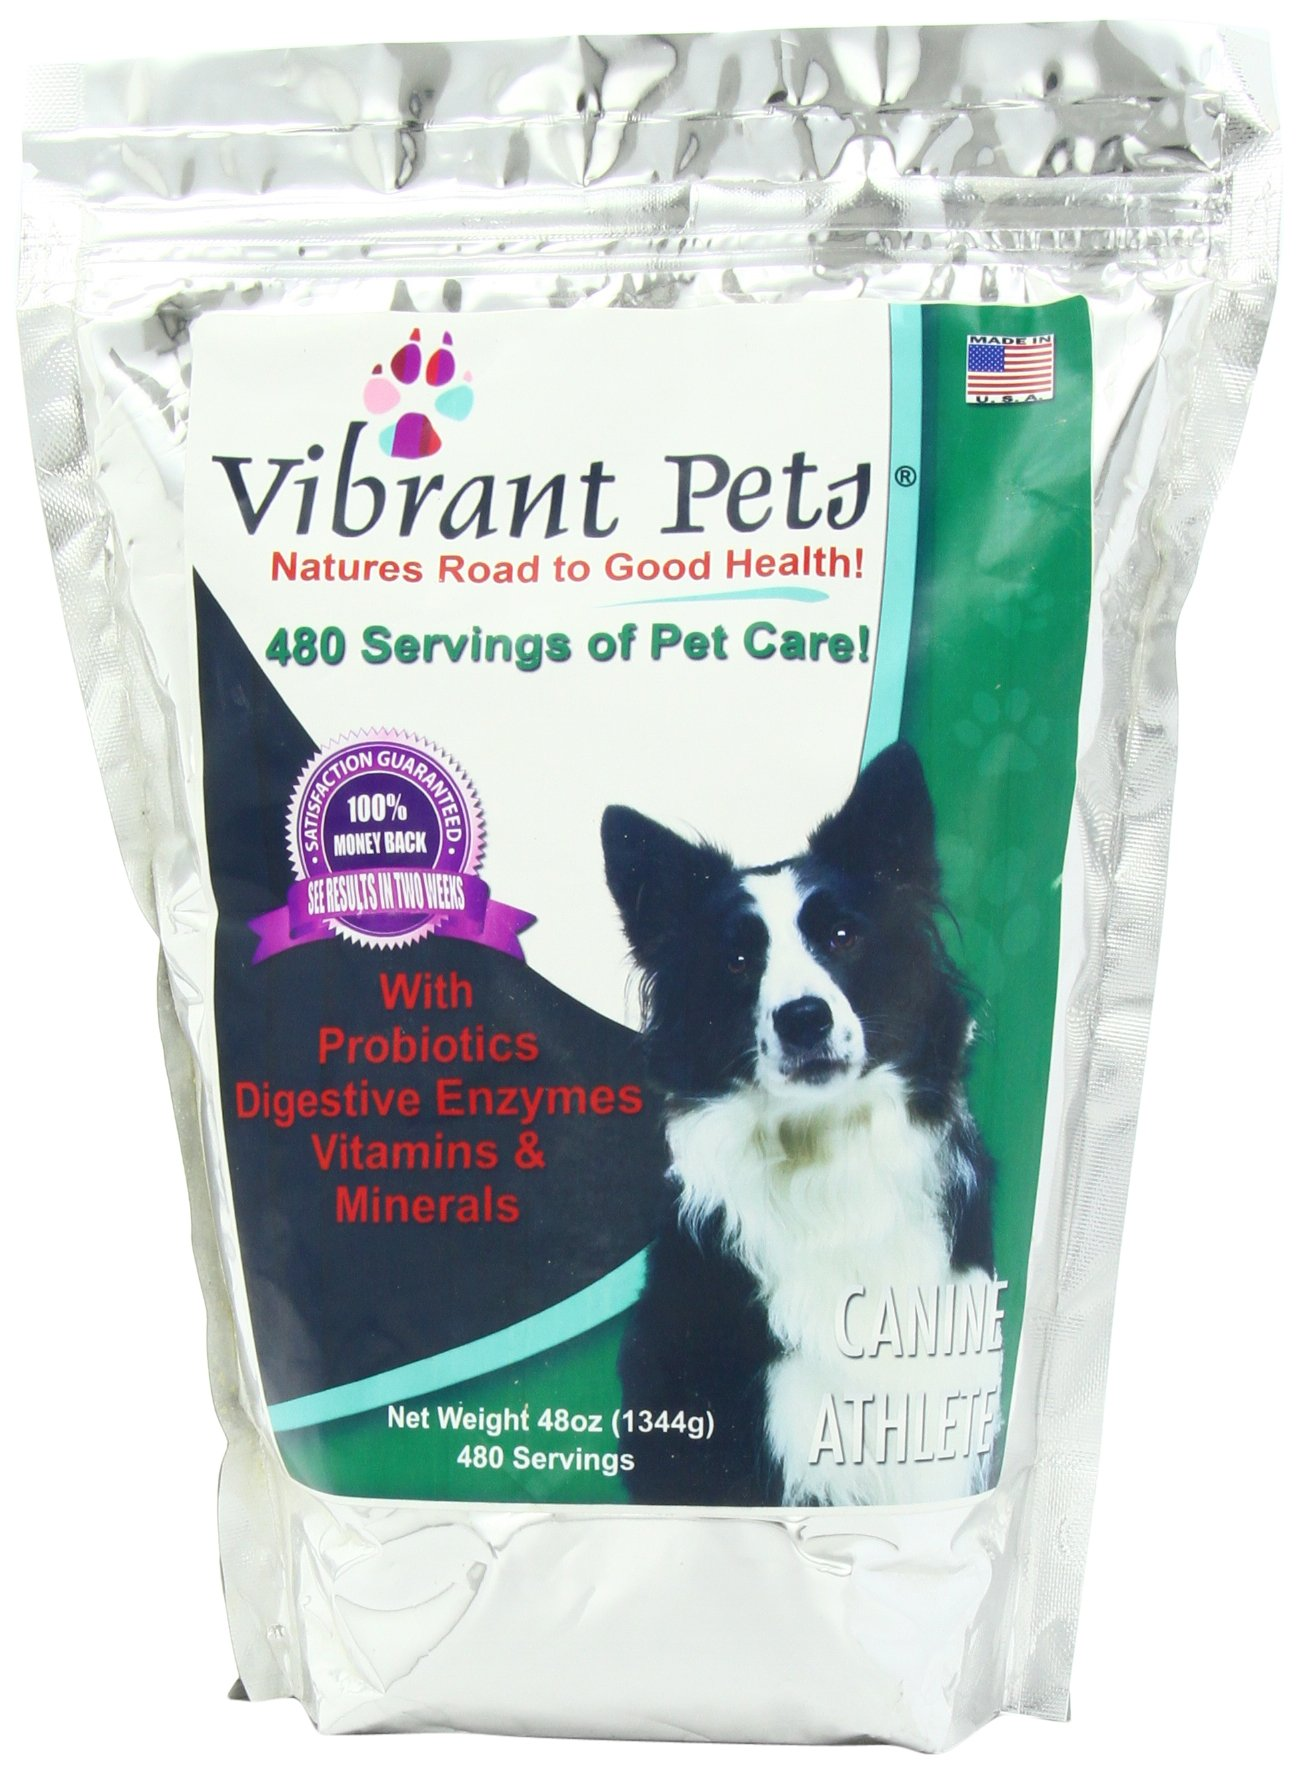 Vibrant Pets Canine Athlete (Advanced) | Produces Beautiful, Shiny, Lustrous Coats | Gives Your Dog Youthful Puppy Energy Again | Strengthens Joints & Muscles | All-in-one Nutrition